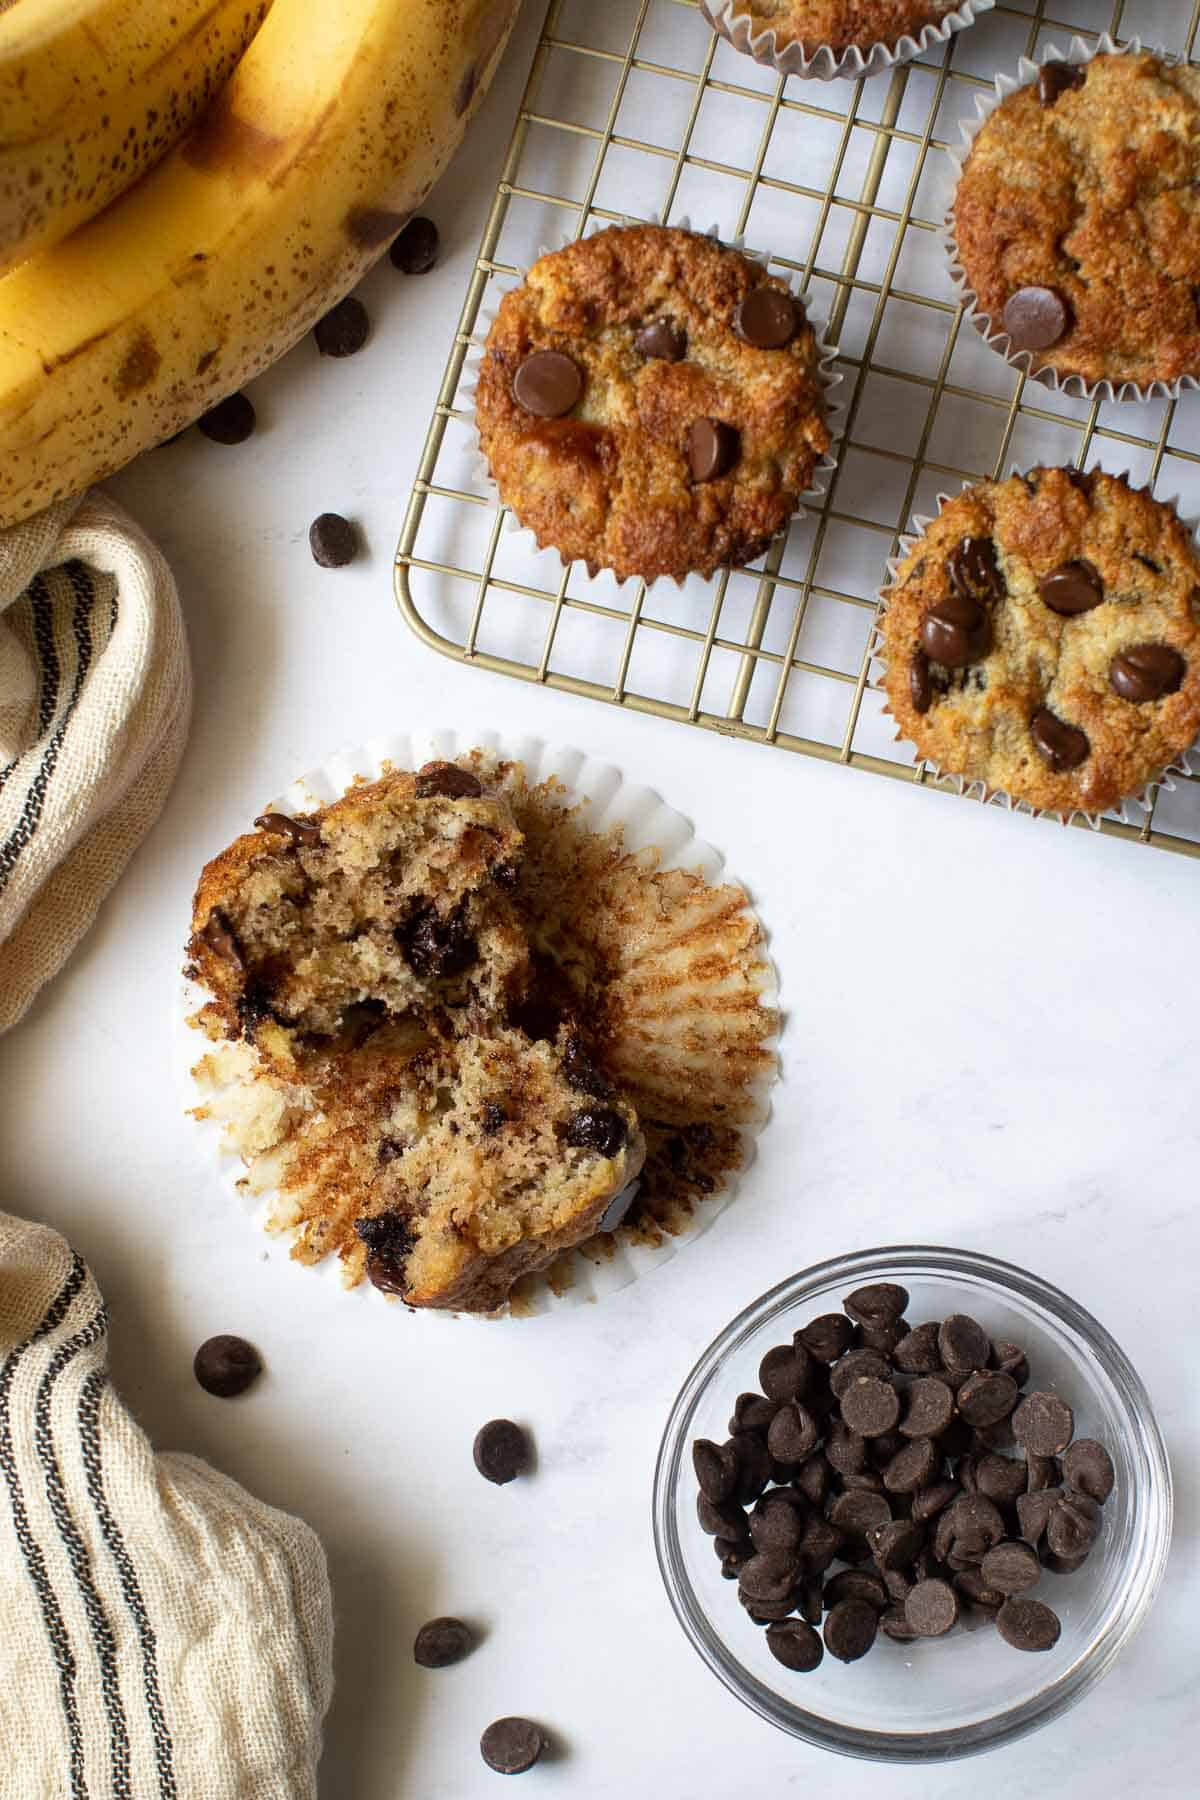 Banana muffin split open with bowl of chocolate chips on the side.